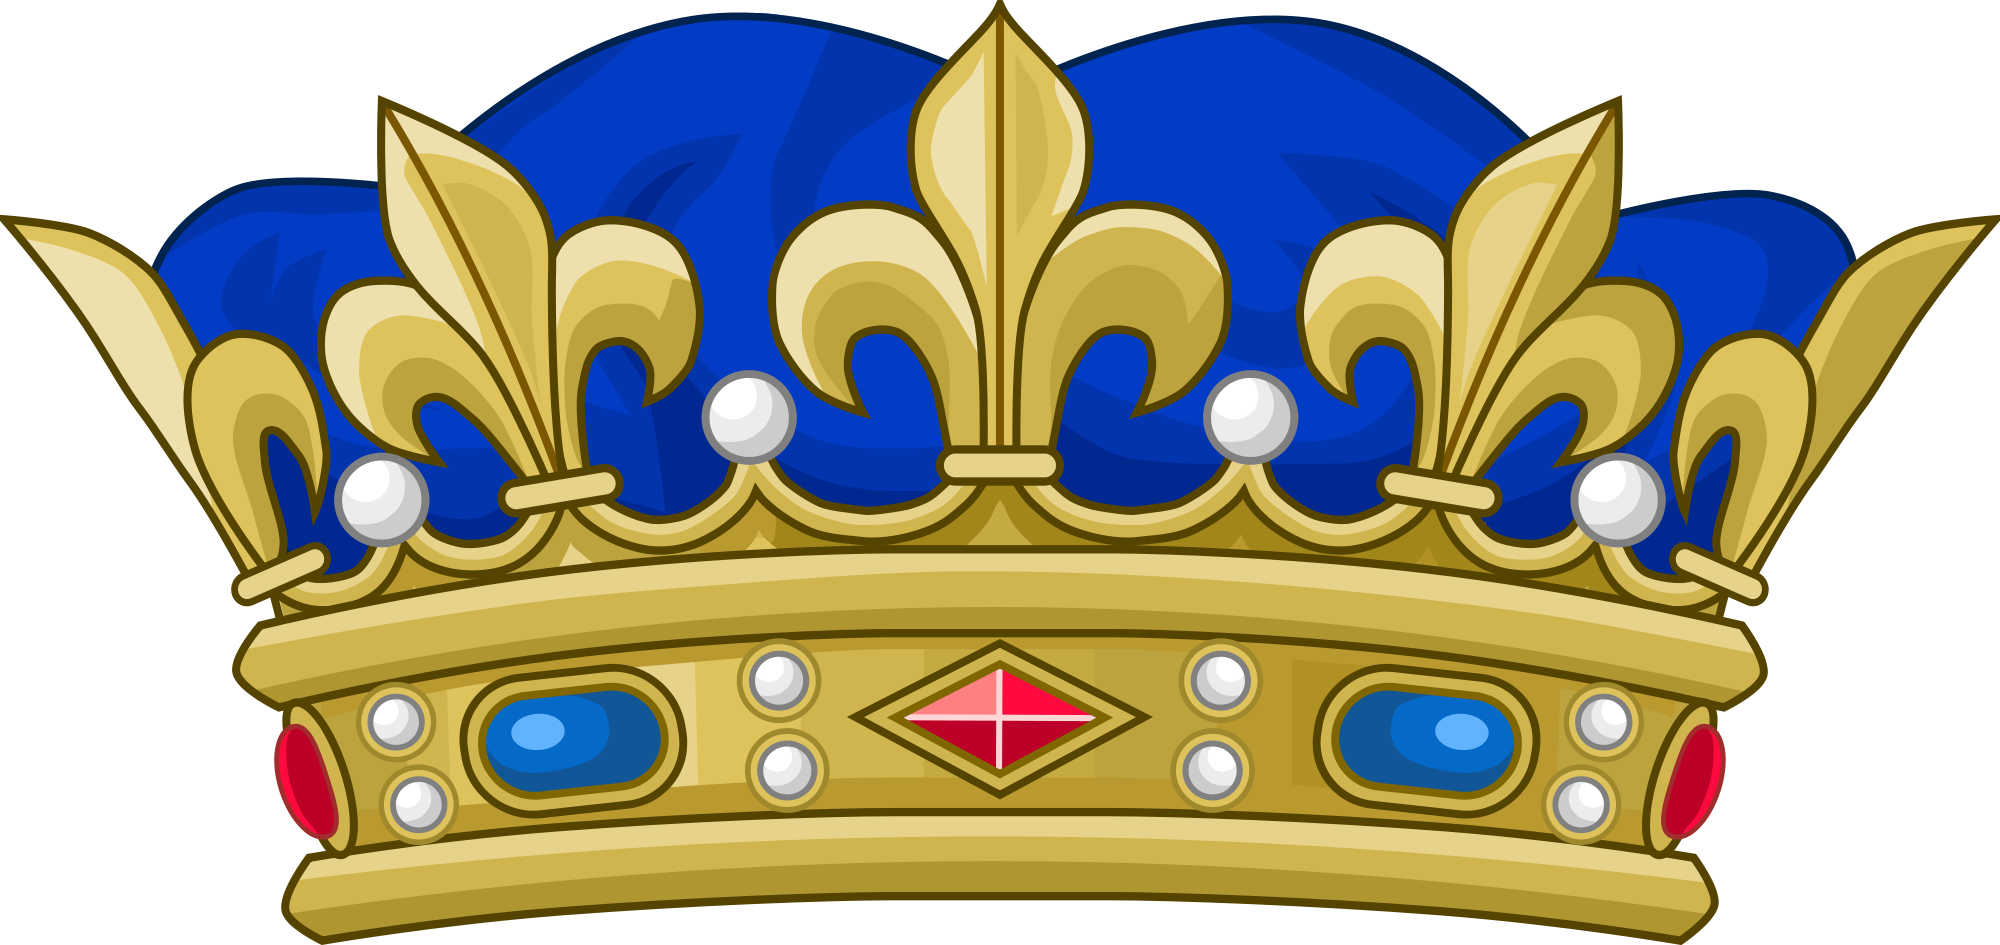 File:Crown of a Royal Prince of the Blood of France.svg - Wikimedia ... png free download